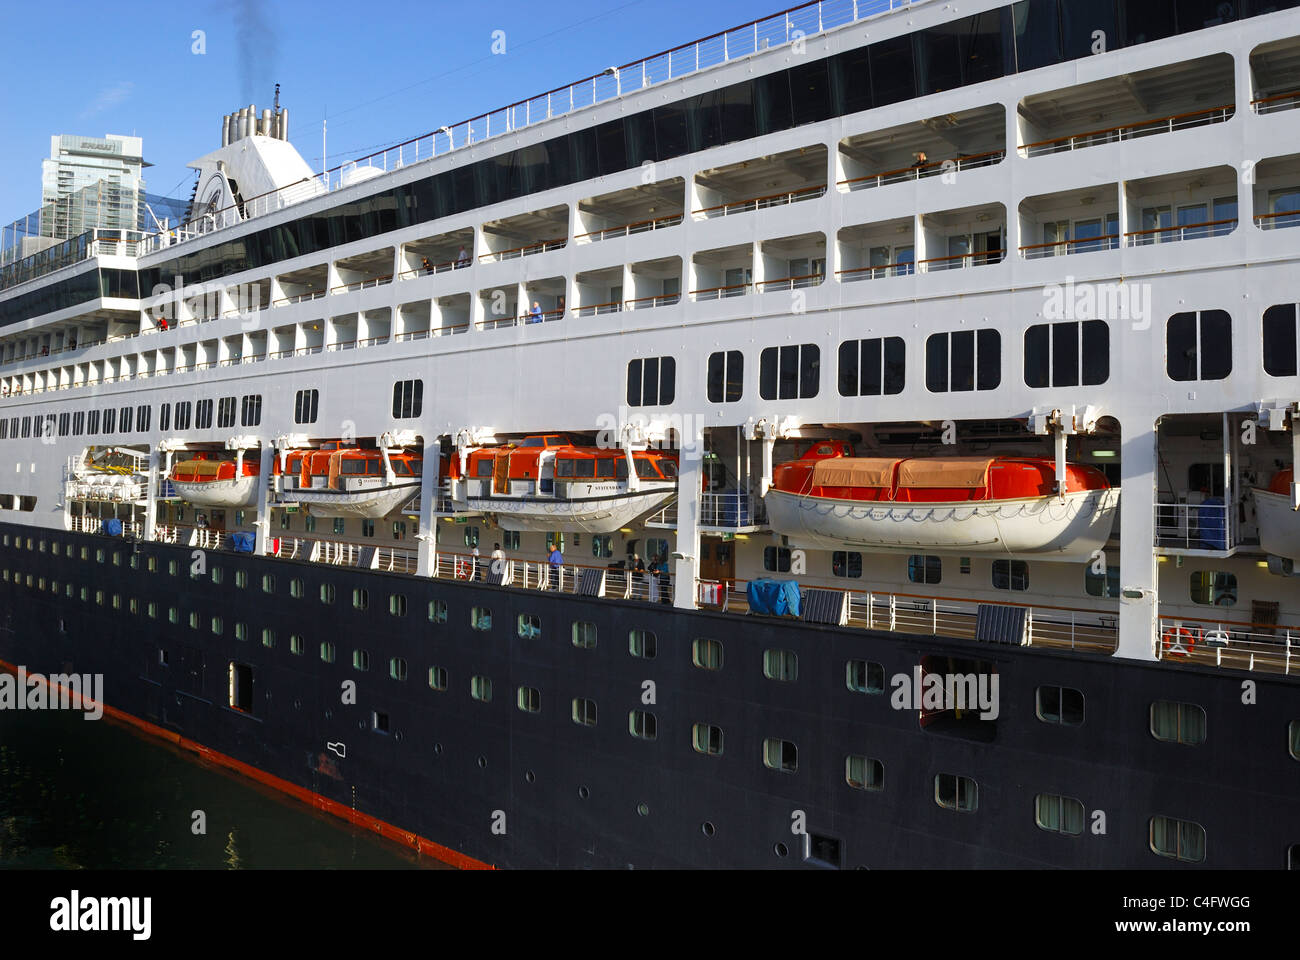 Port Side View Of The Cruise Ship Statendam With Its Many - Port side of a cruise ship